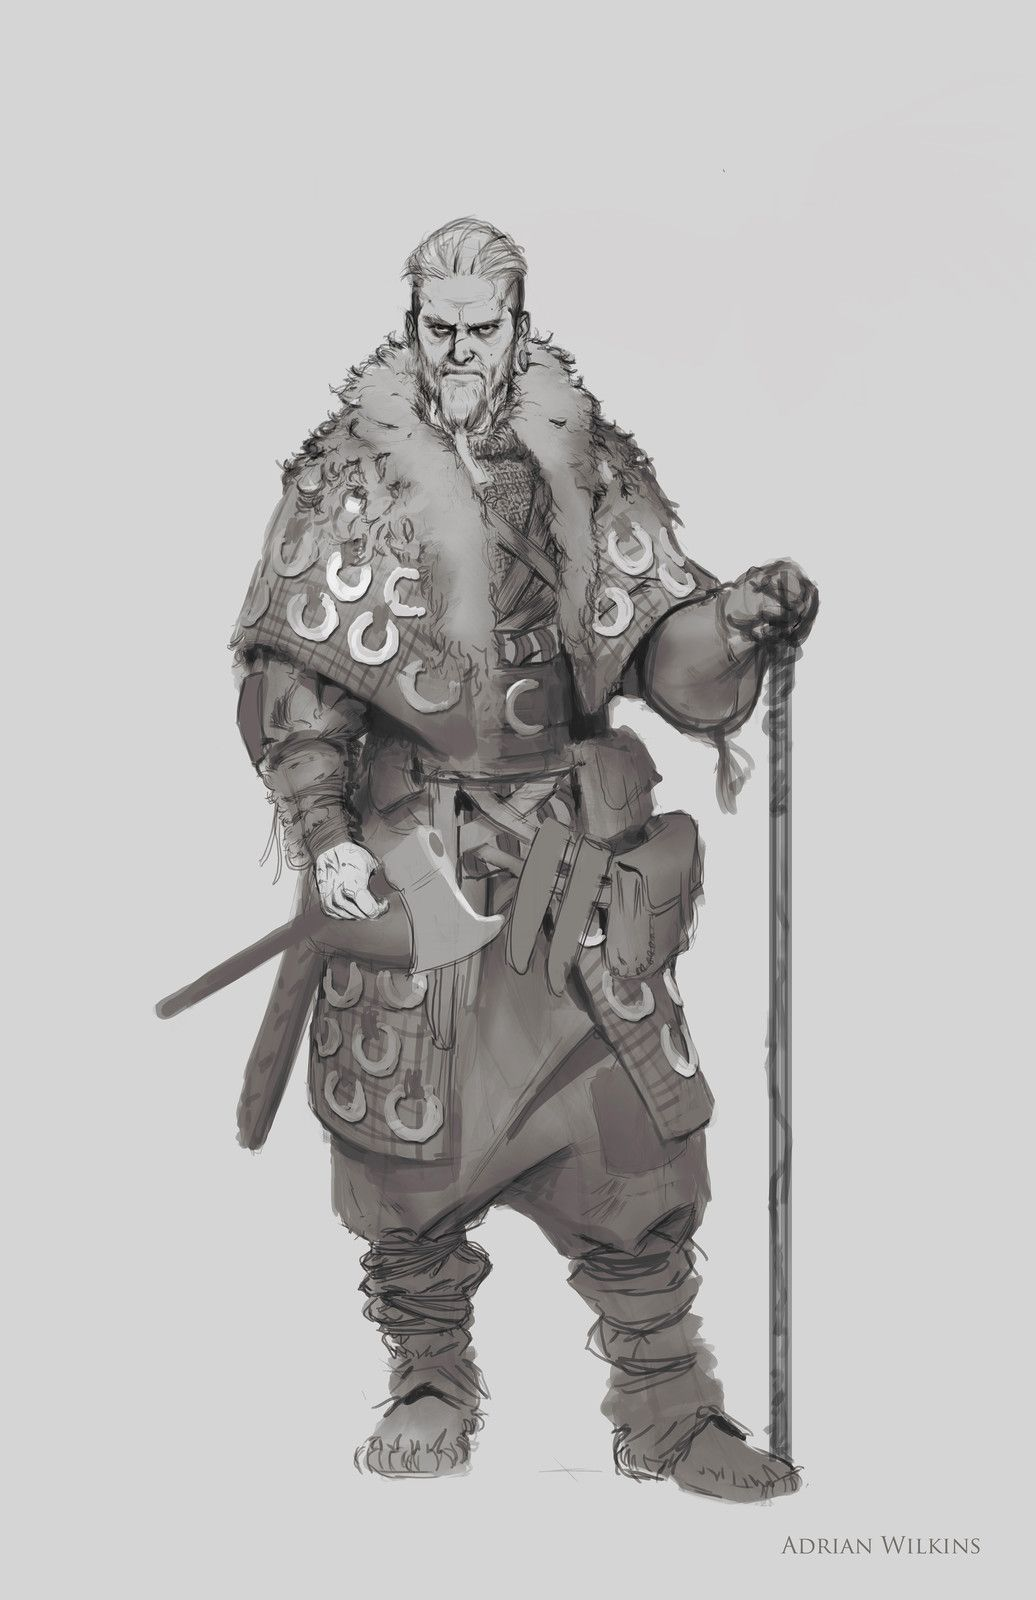 Character Design And Concept Art : Viking sketch adrian wilkins on artstation at